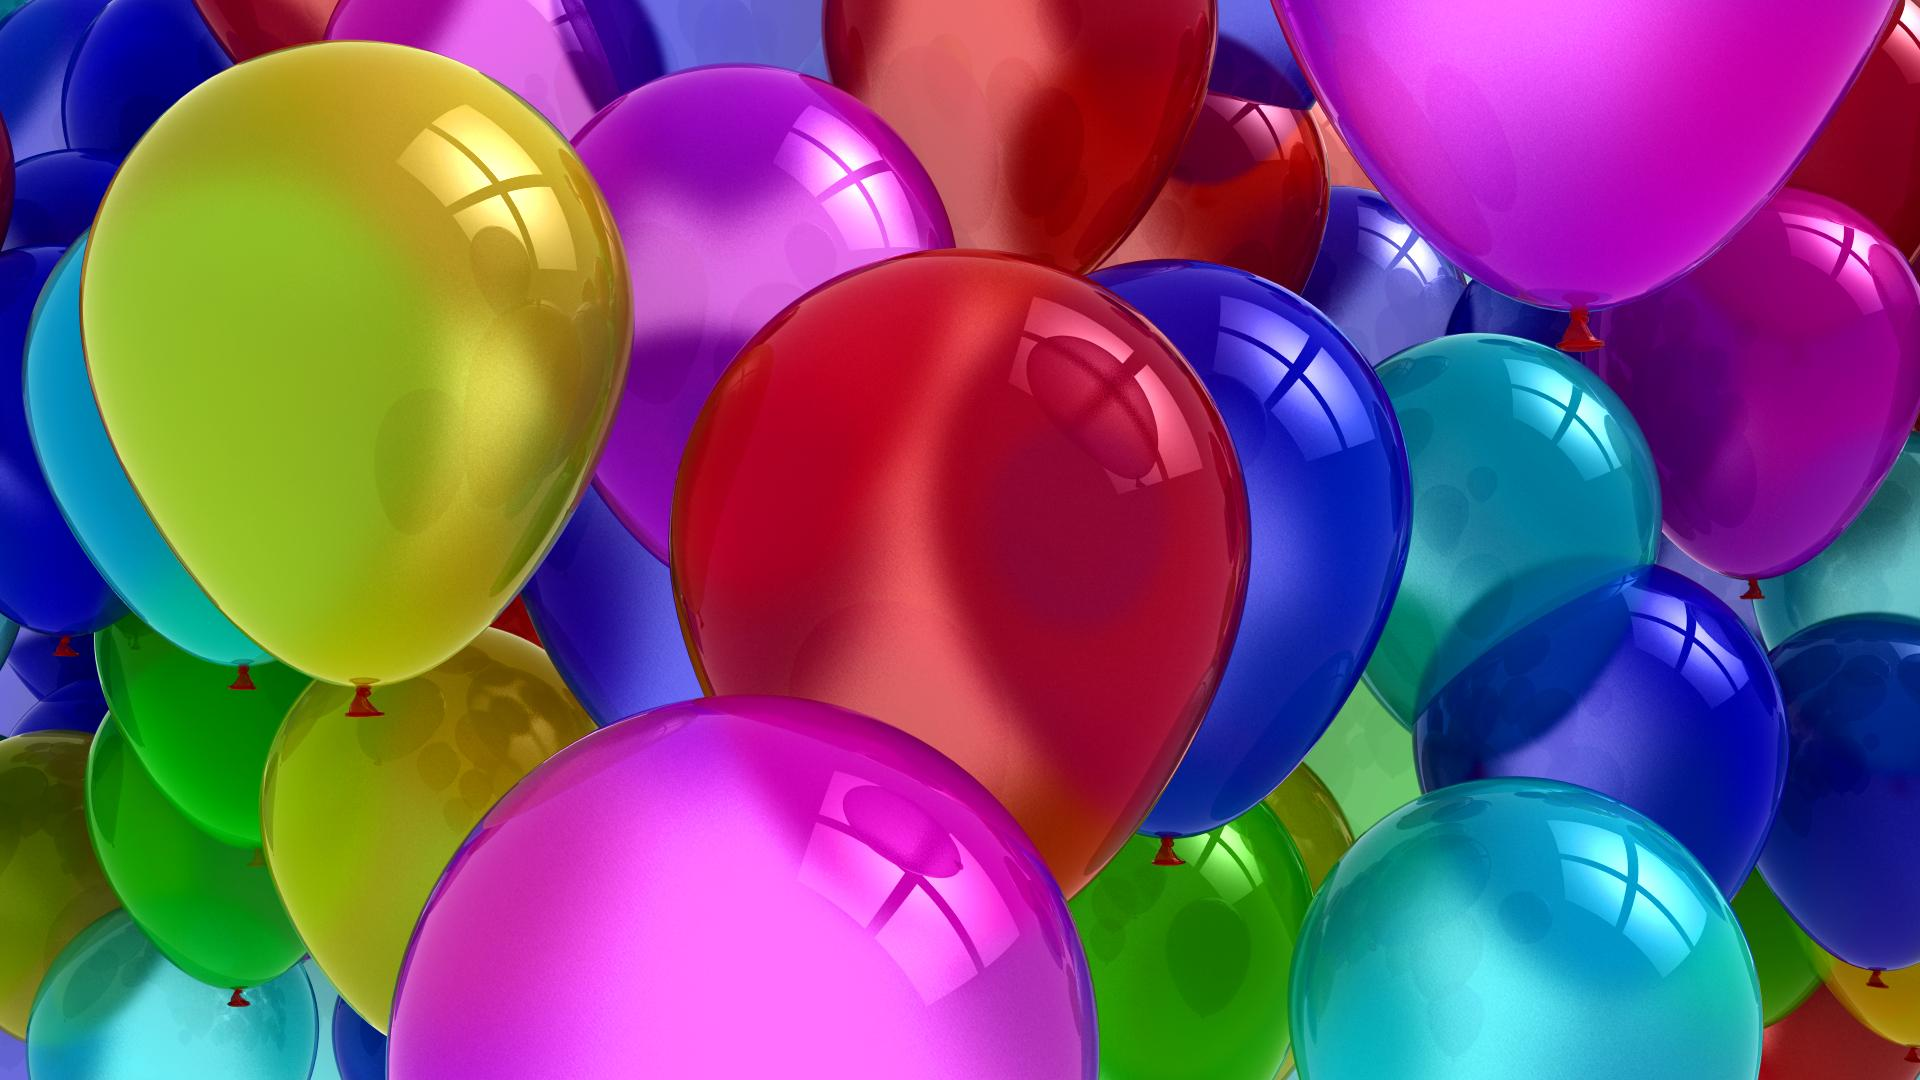 balloons wallpapers - photo #34